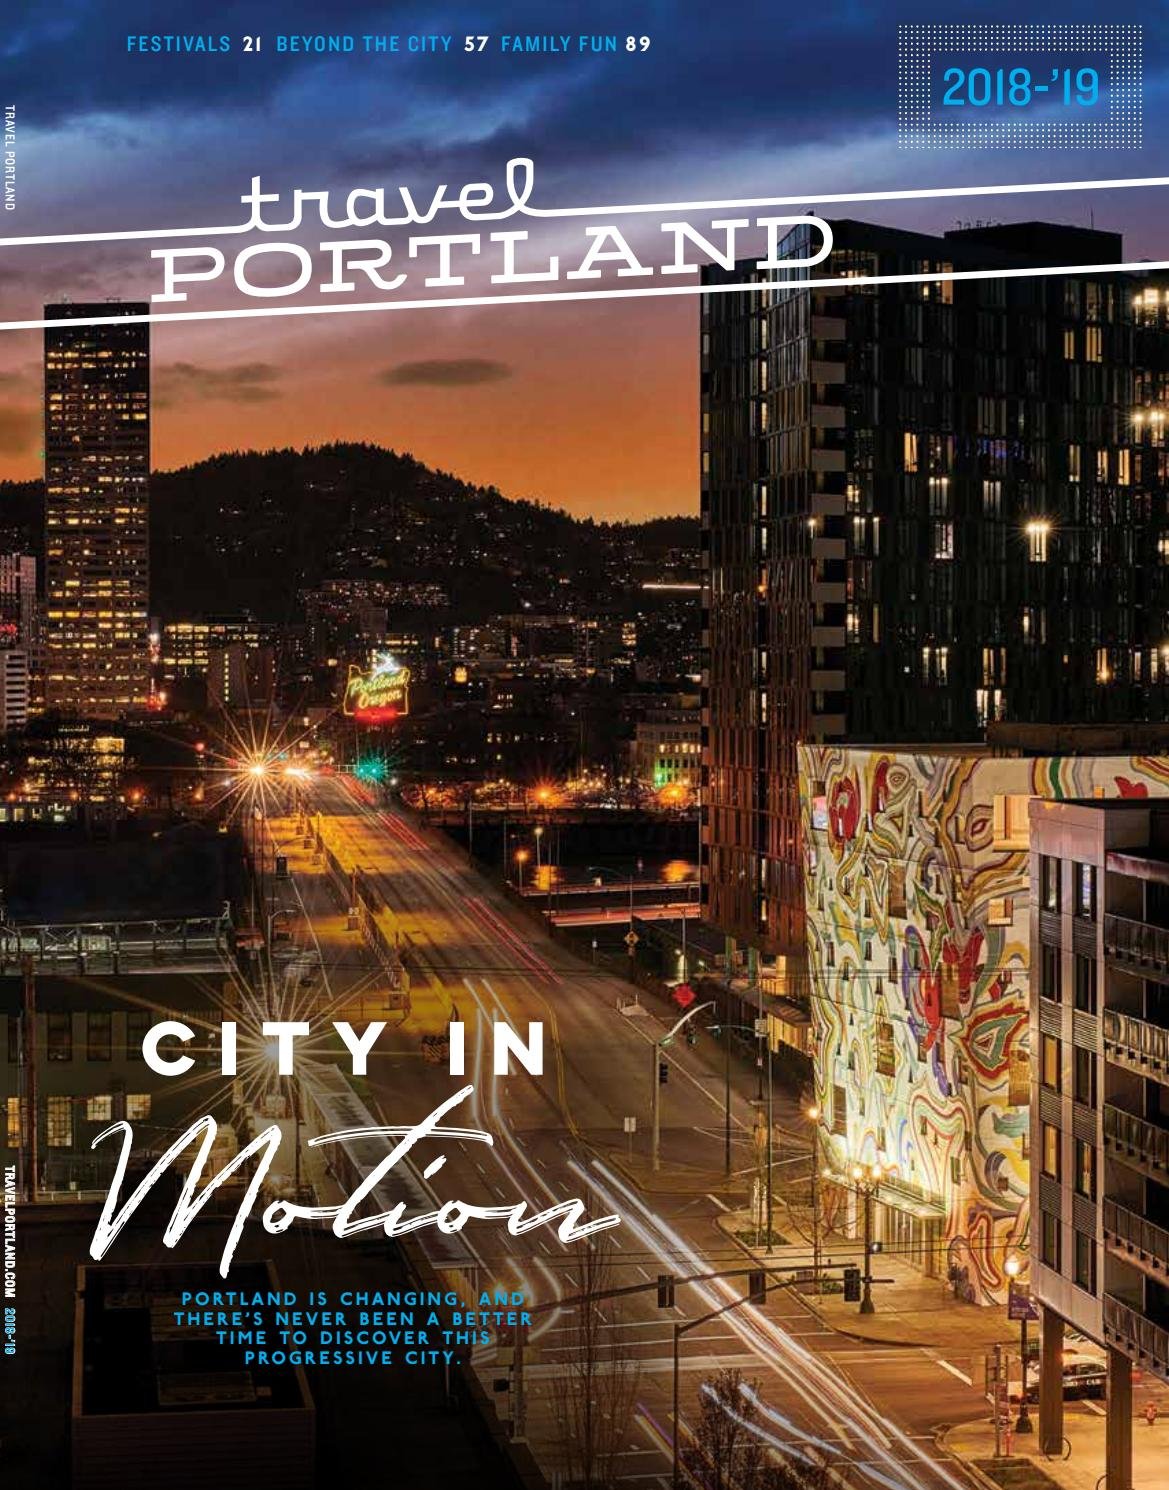 buy online d6393 c7def Travel Portland Visitors Guide, 2018- 19 by Travel Portland - issuu